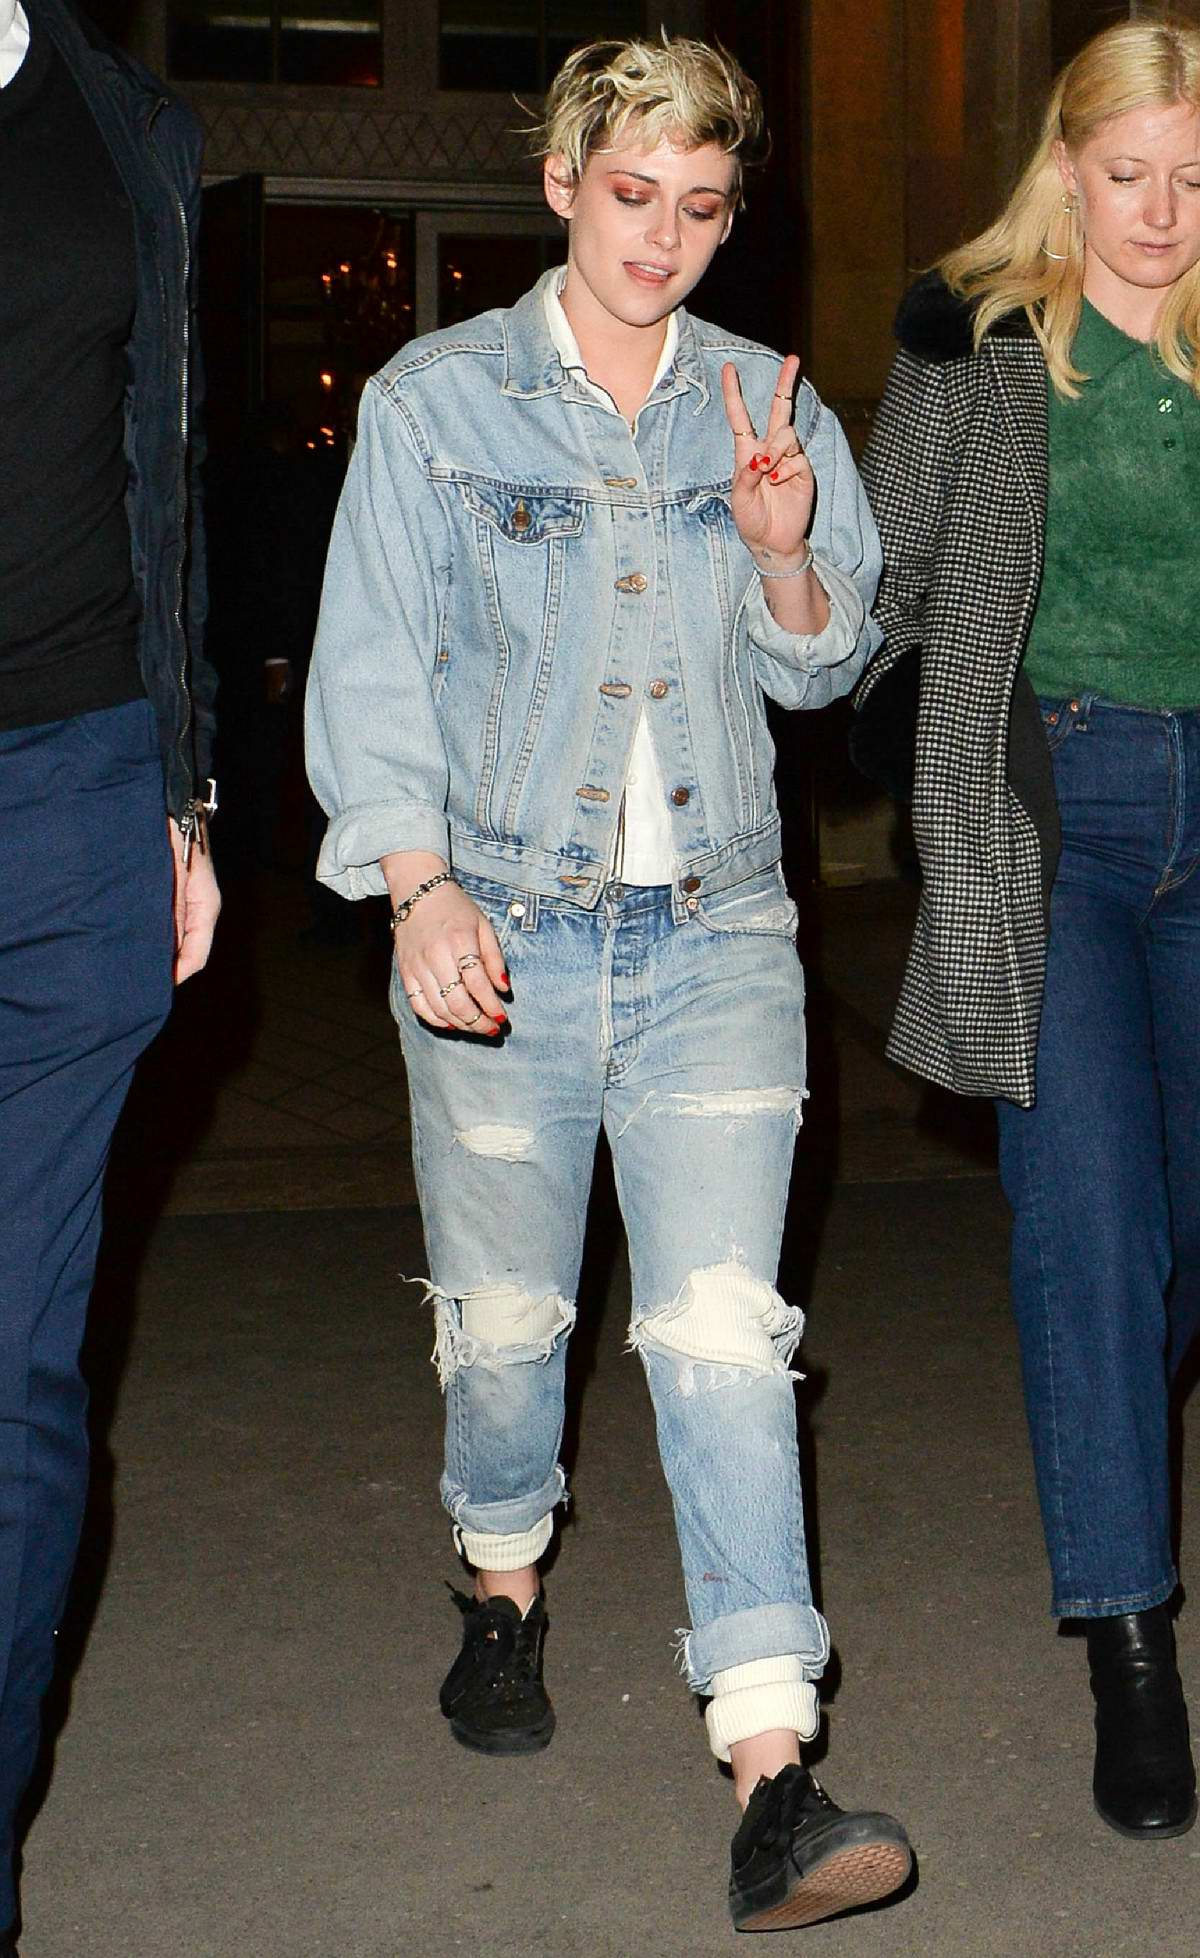 Kristen Stewart flashes peach sign as she leaves the Louis Vuitton after party during Paris Fashion Week 2019 in Paris, France